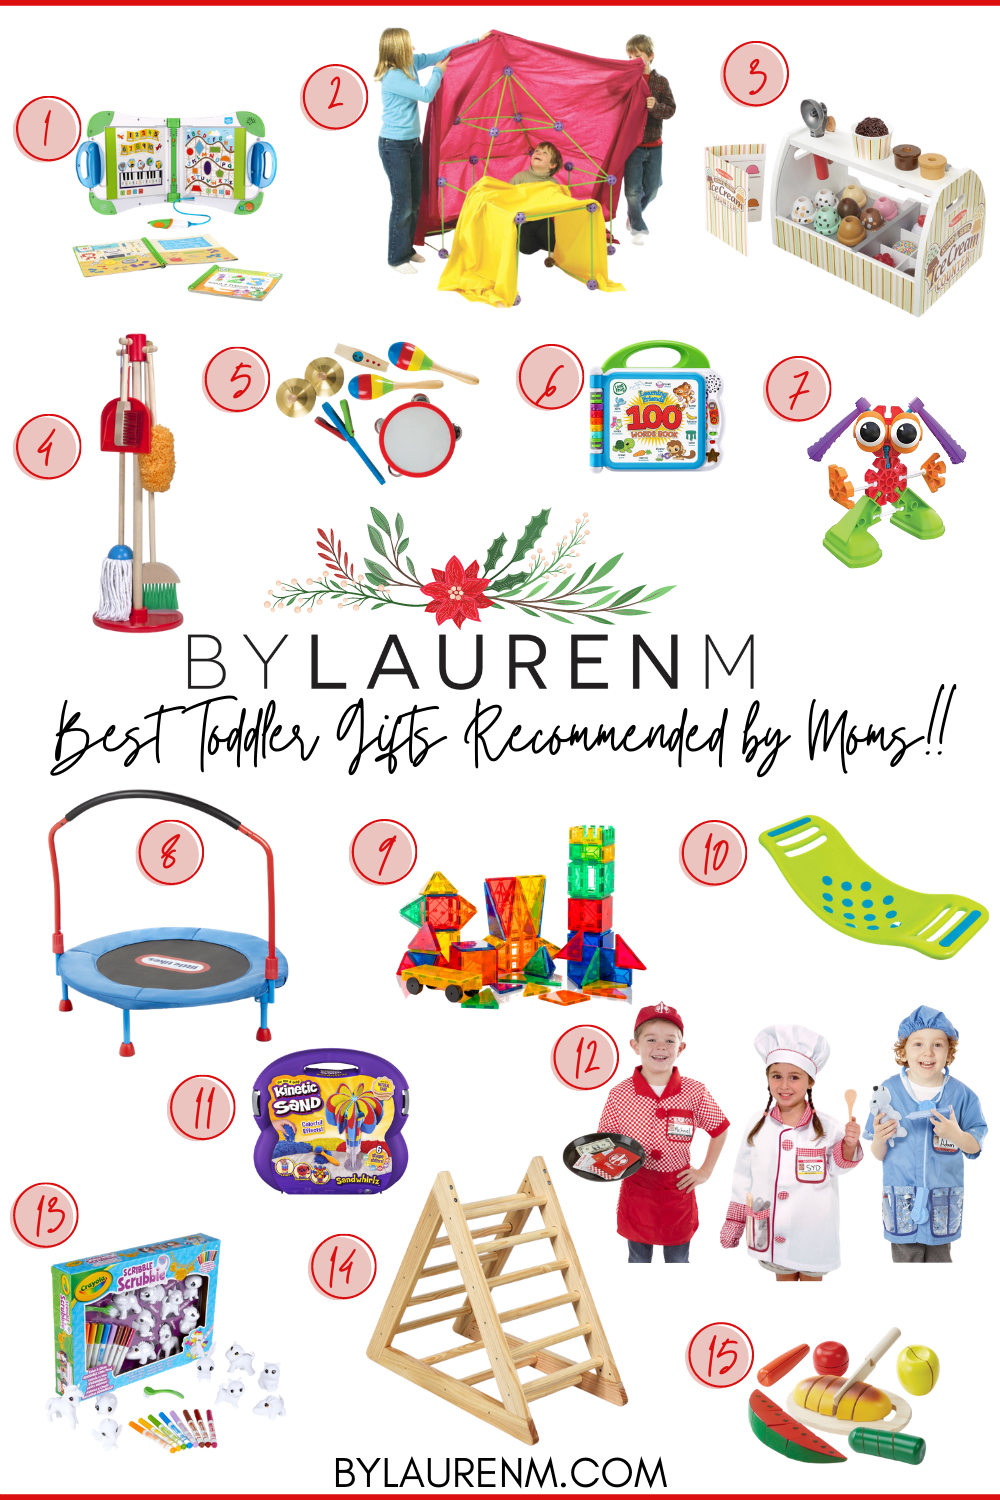 Virginia blogger, Lauren Dix, shares fifteen of the best toddler gifts as recommended by fellow moms!